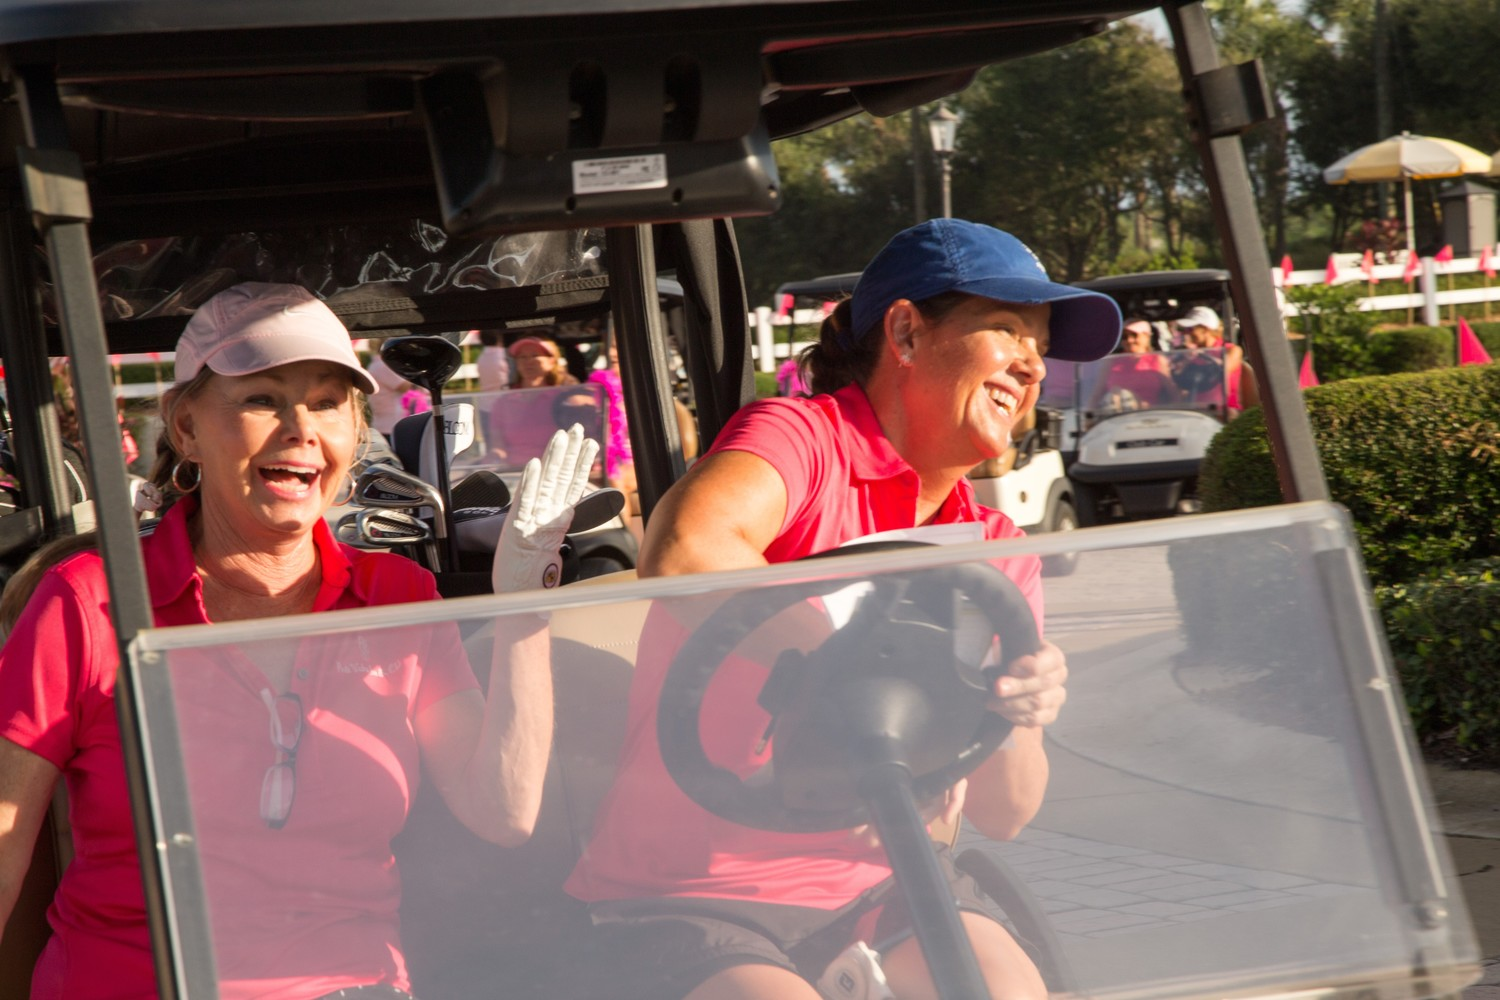 Pink Ribbon golfers have some fun while driving their golf carts.